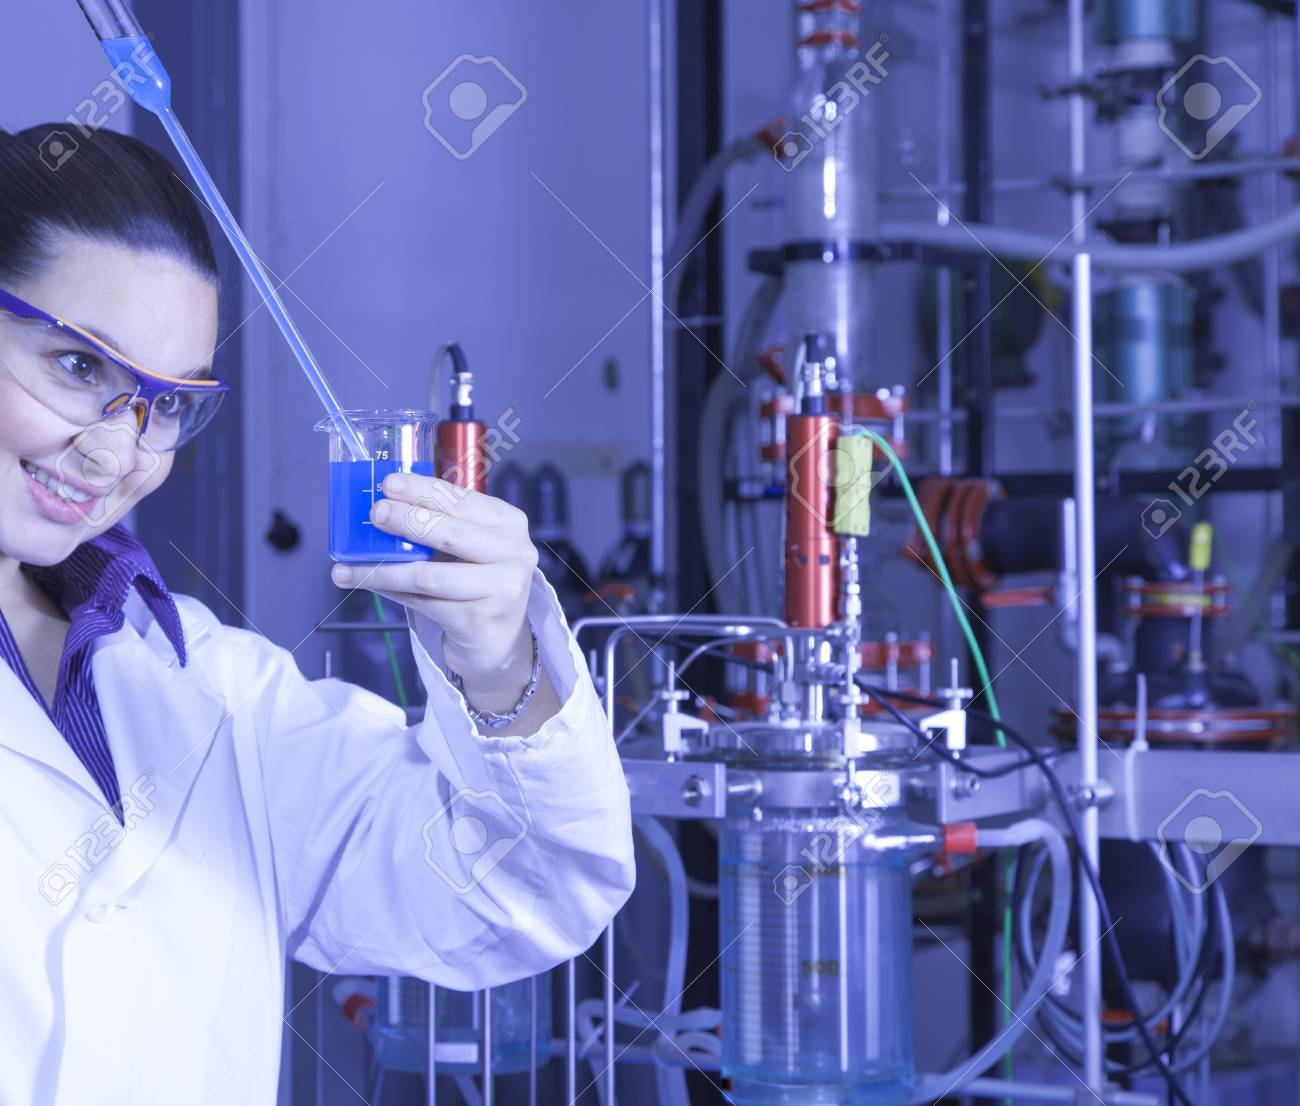 Closeup of a cute female researcher holding test beaker and tube with chemicals, while carrying out some experiments in a laboratory, focus on liquid in test tube, blue color toned image Stock Photo - 16119170